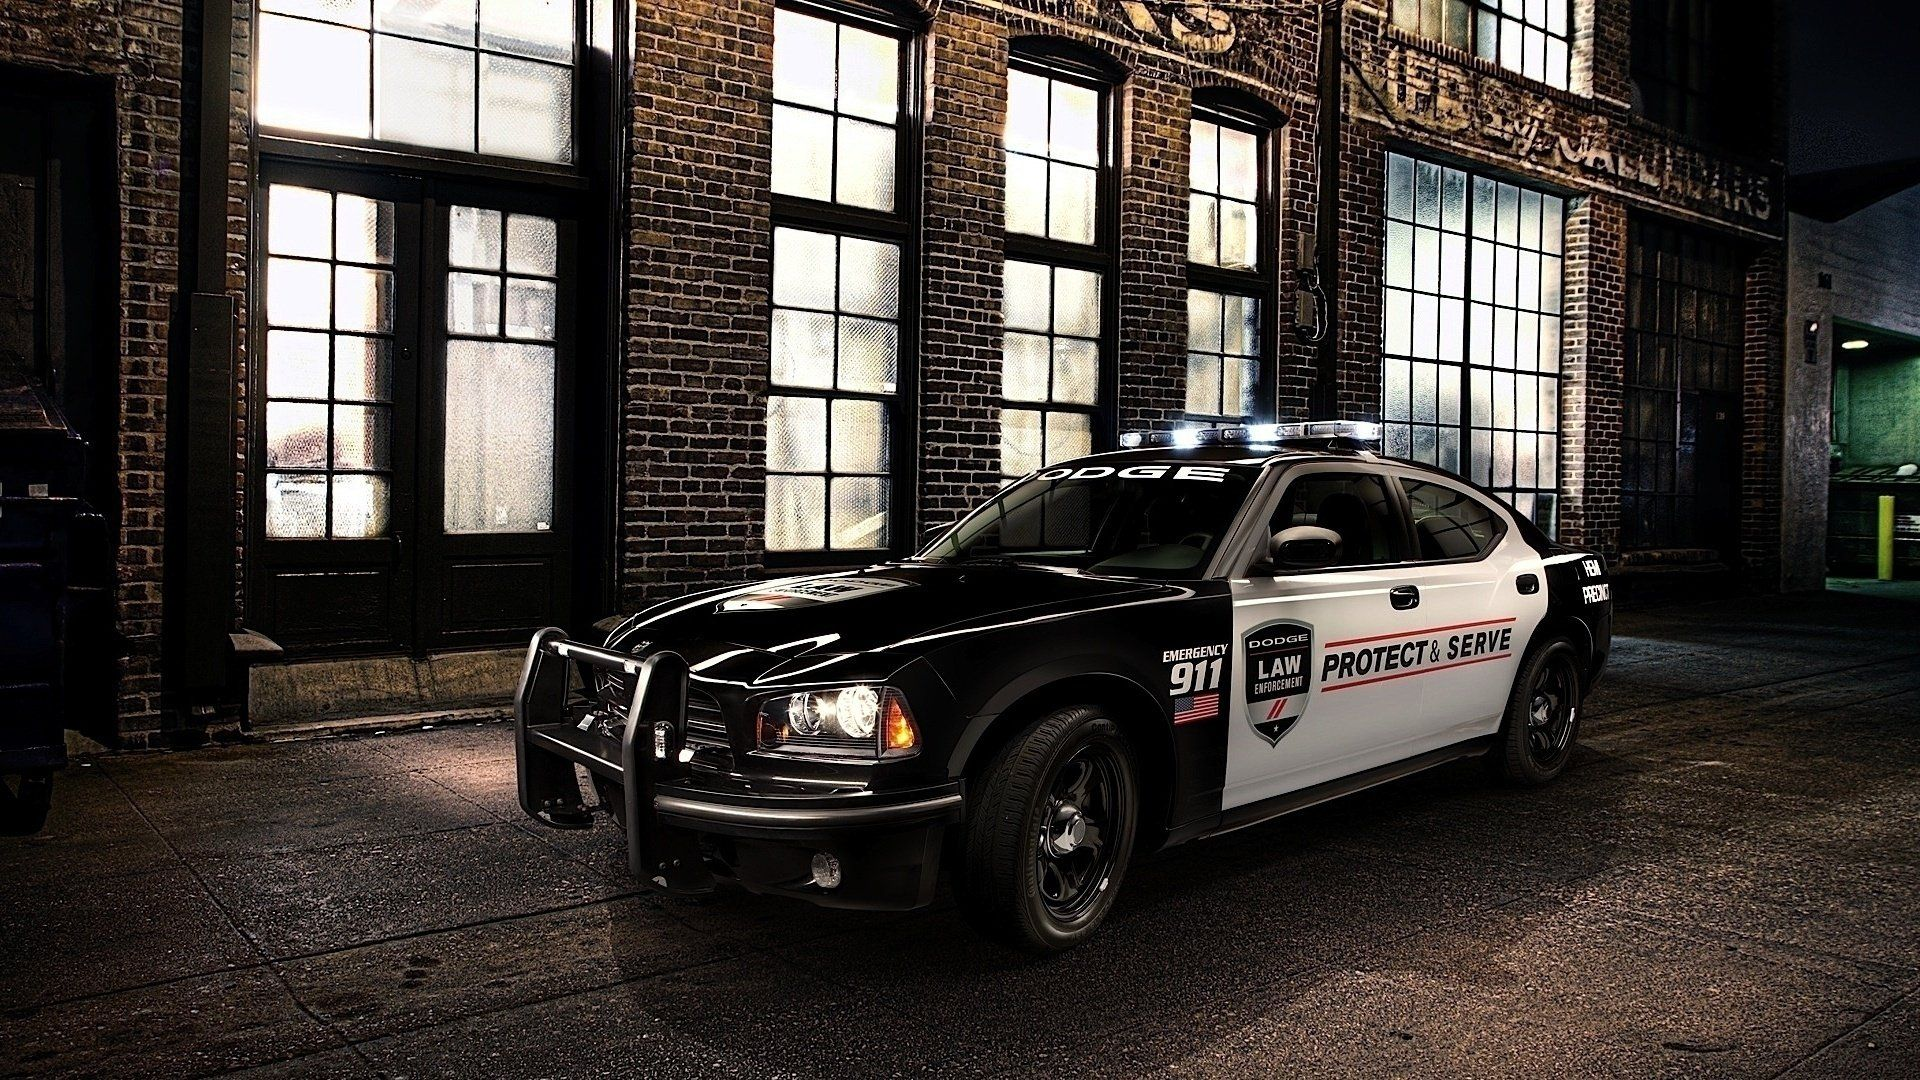 Lovely Police Dodge Charger At The Streets Of The Night City